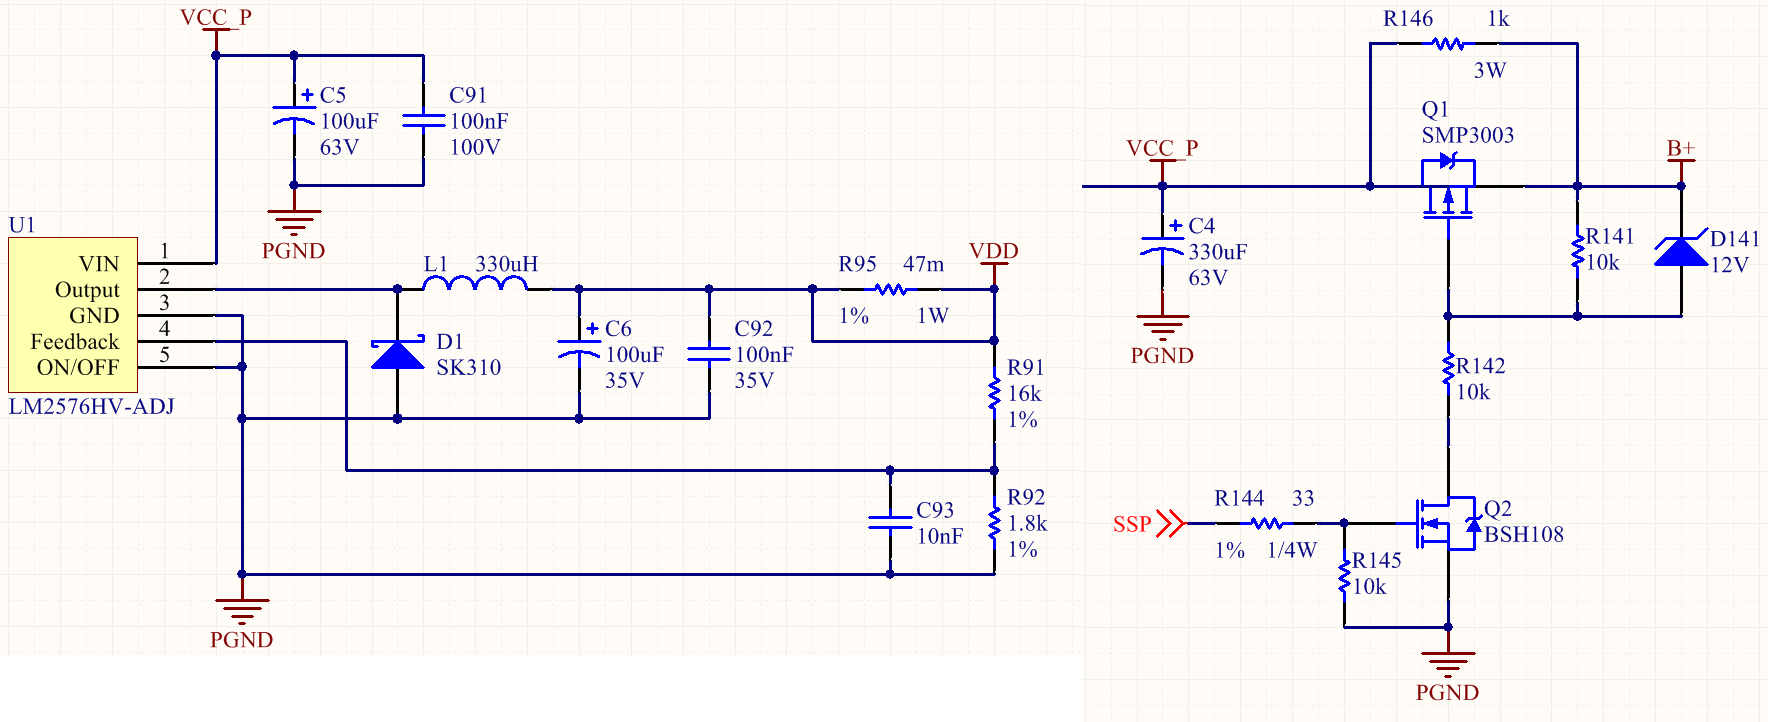 lm2576hv input voltage drop on lm2576 with soft start circuiti also tried original lm2576 15v and lm2596 dc to dc product, they all show the same problem on input voltage, how can i fix it?